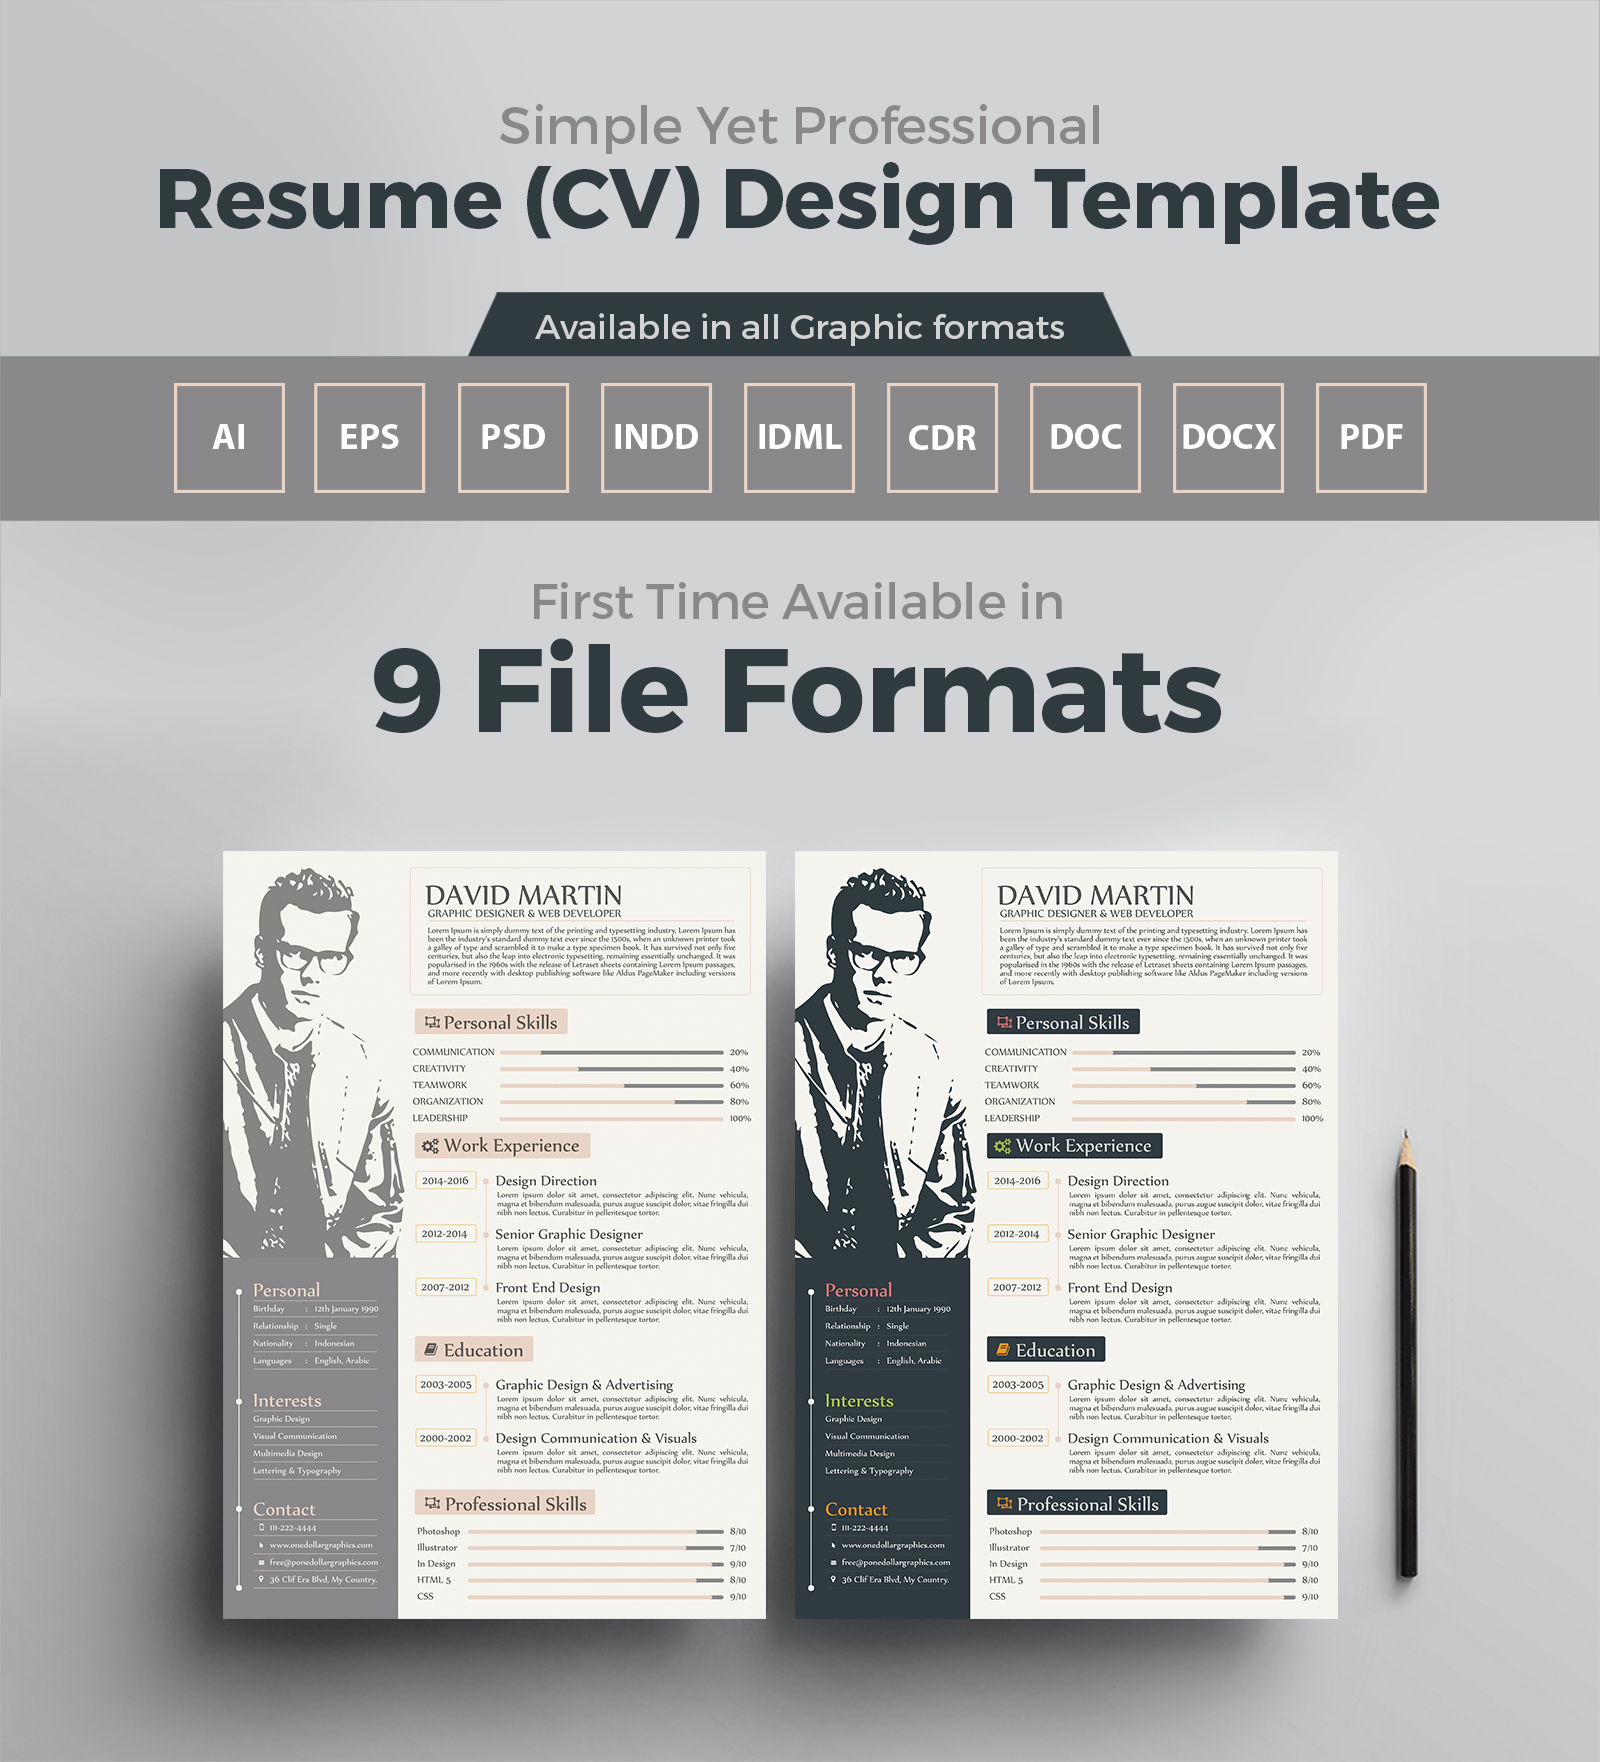 Simple Yet Frofessional Resume-CV Design Templates